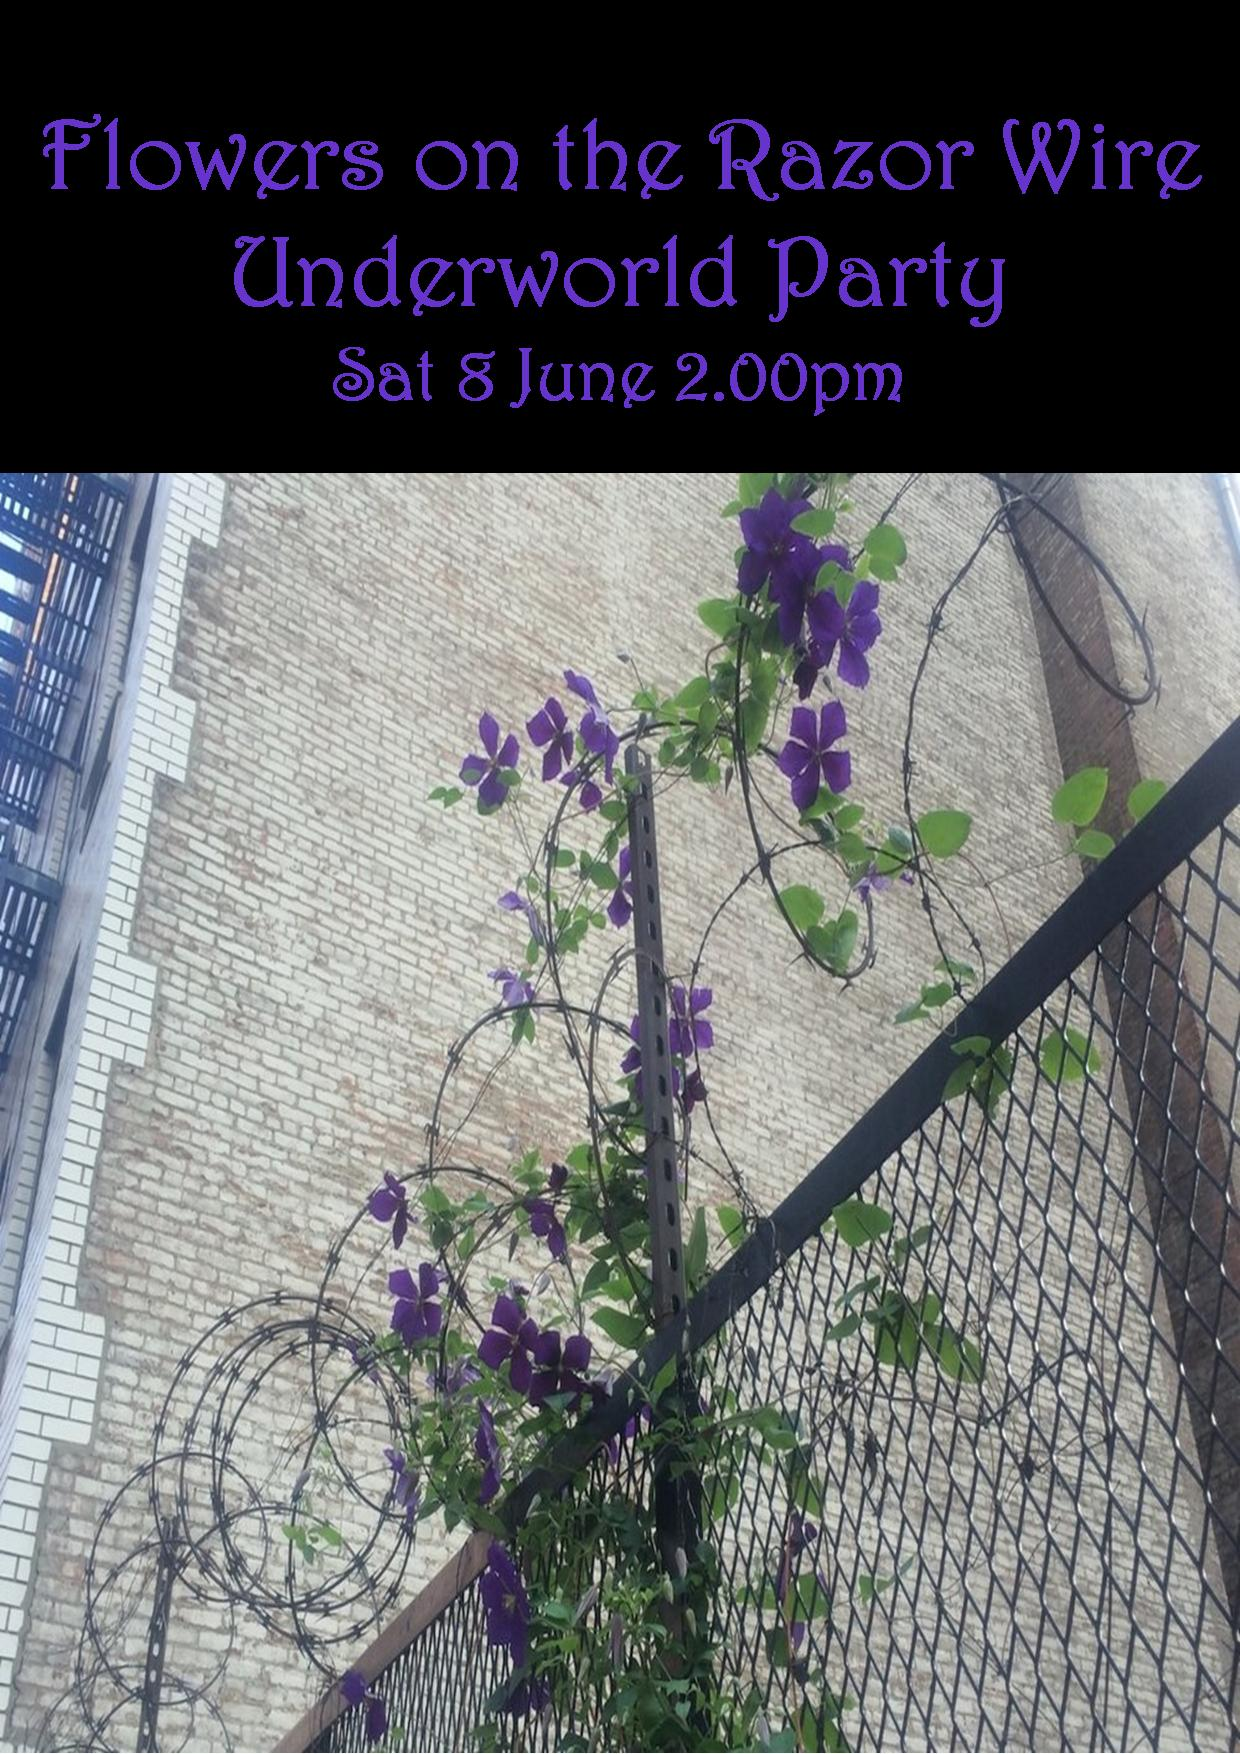 FLOWERS ON THE RAZOR WIRE SAT 8 JUNE 2.00PM